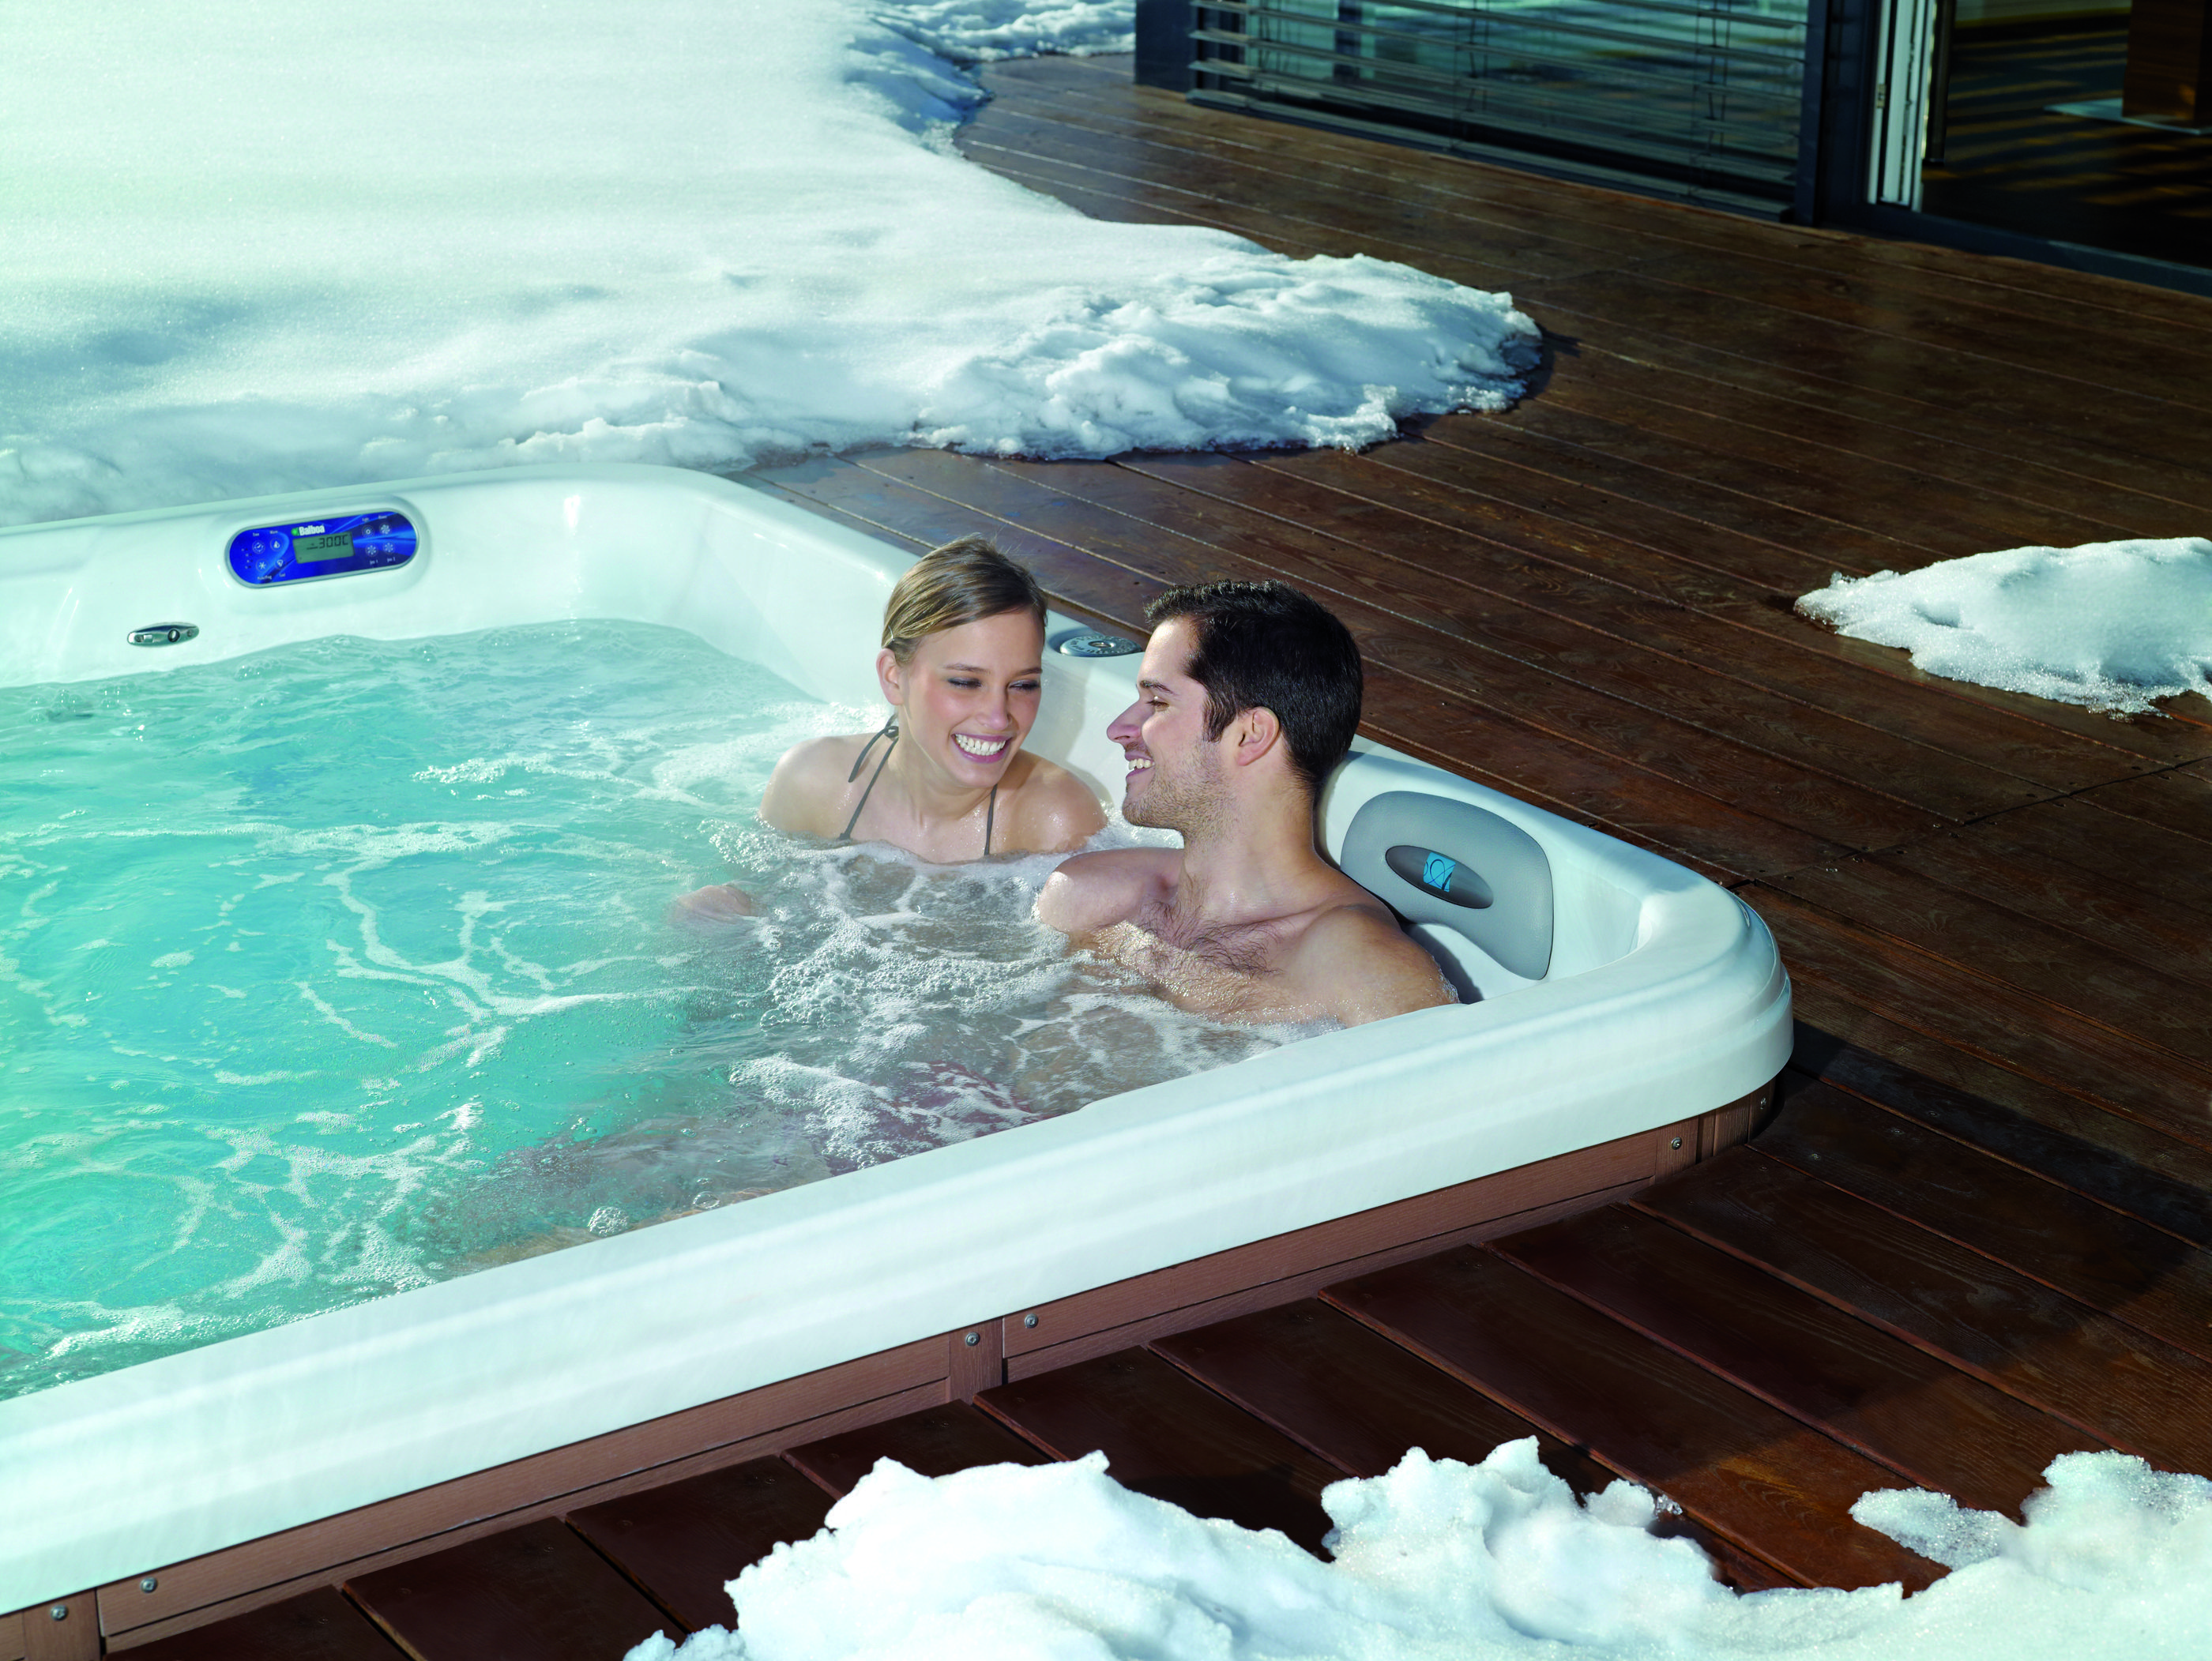 Jacuzzi Pool Repairs Jacuzzi Pool Repairs Pools Wuschik Wellness Shop Germany